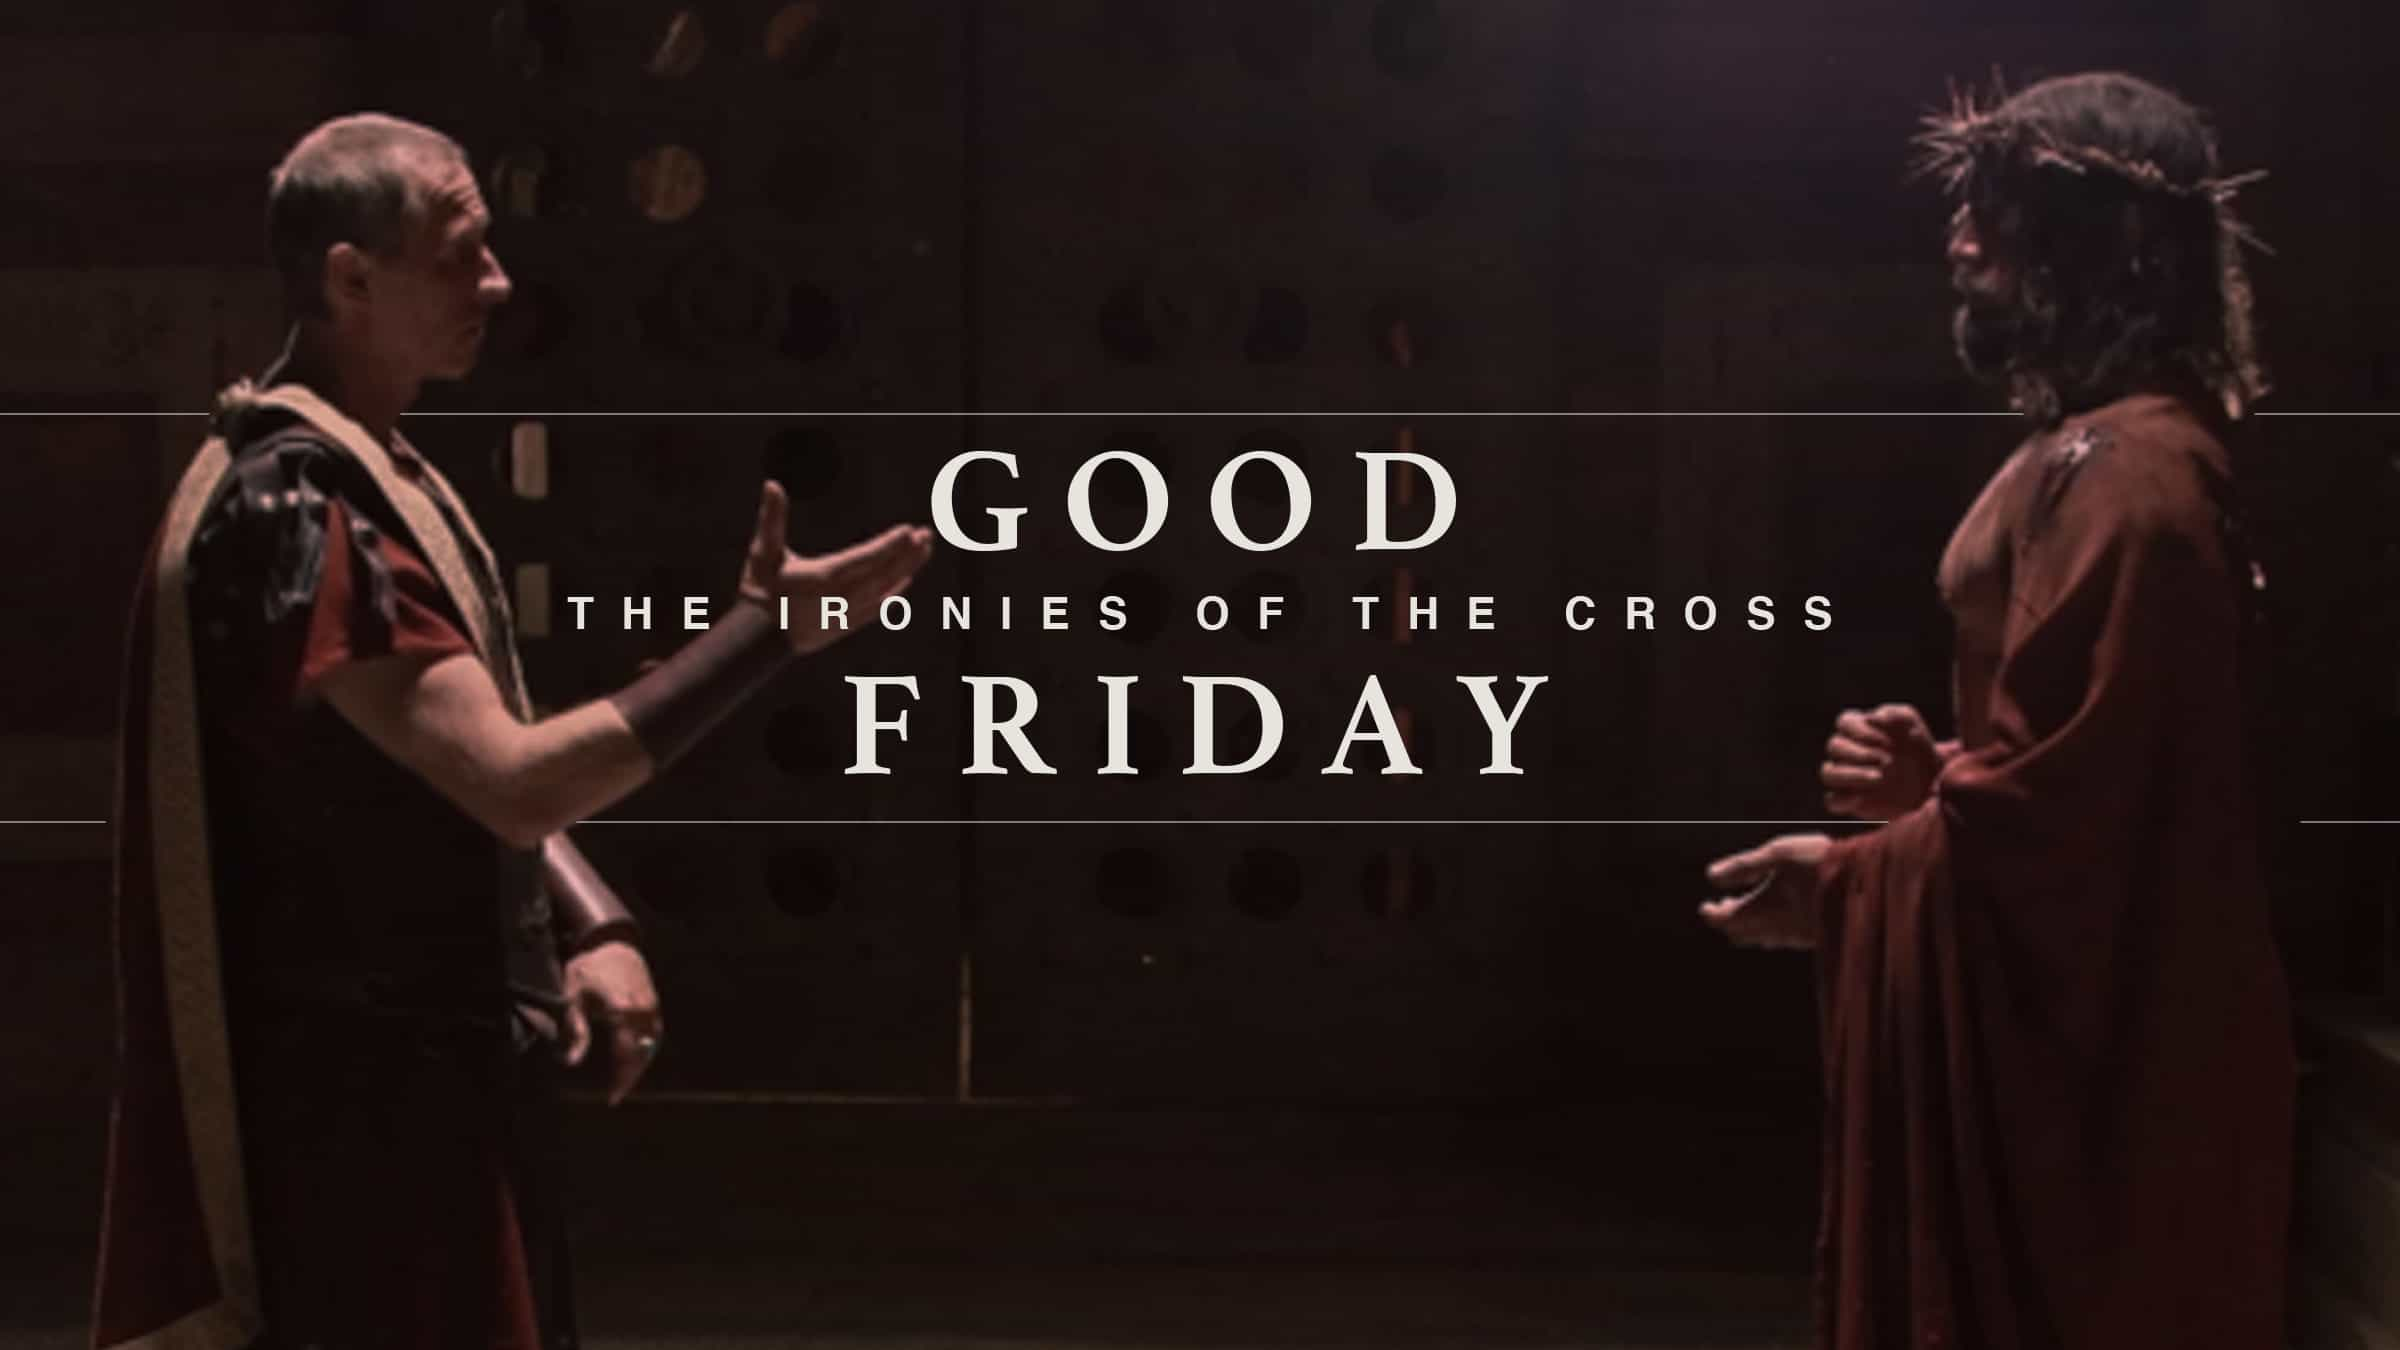 Good Friday 2020: The Ironies of the Cross - Part 2